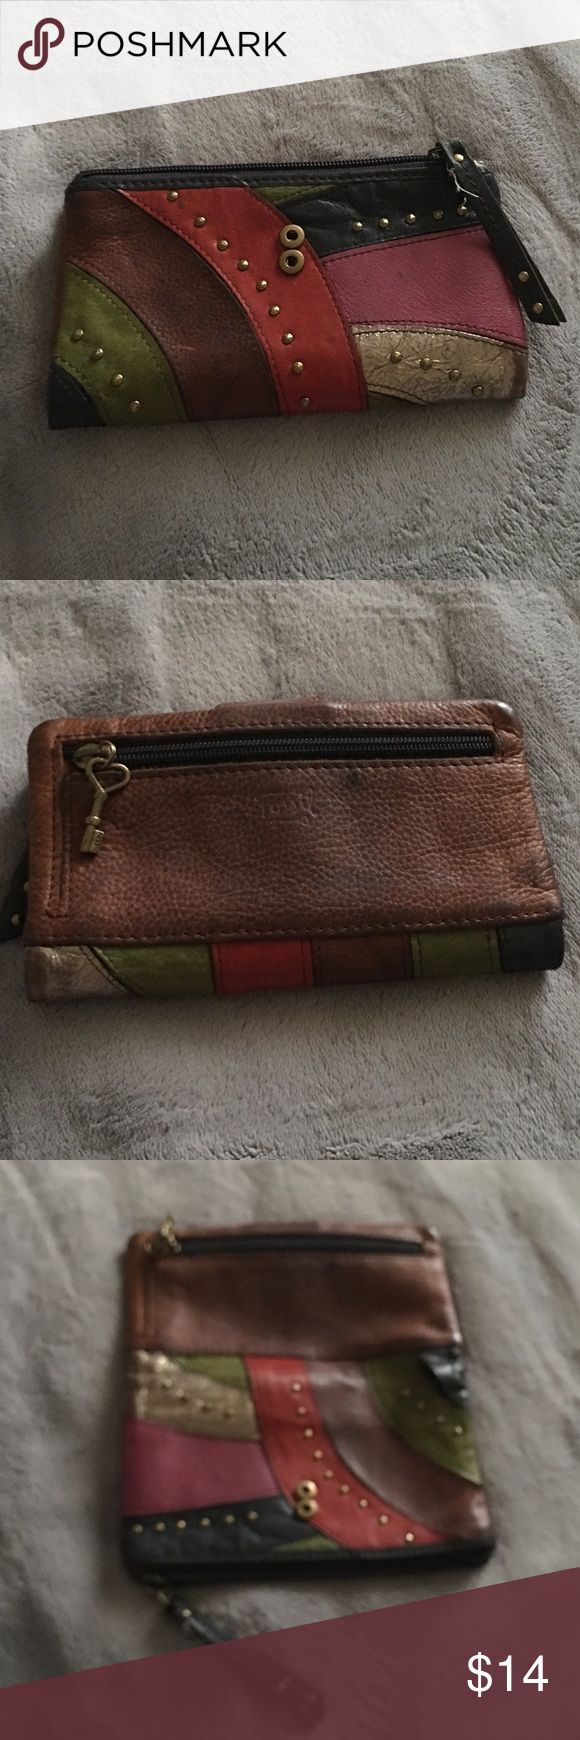 Fossil wallet Beautiful good used fossil wallet Fossil Bags Wallets